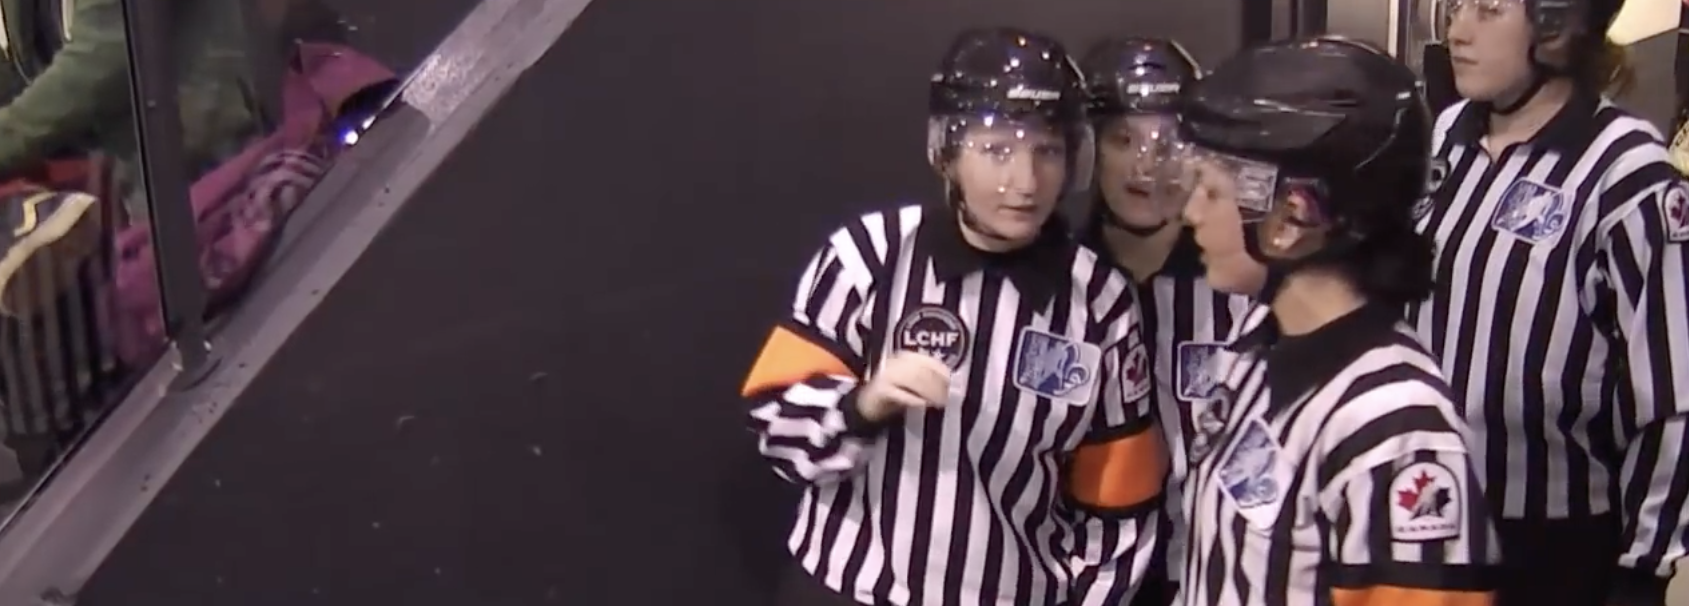 Female Officials Growing Their Own Game